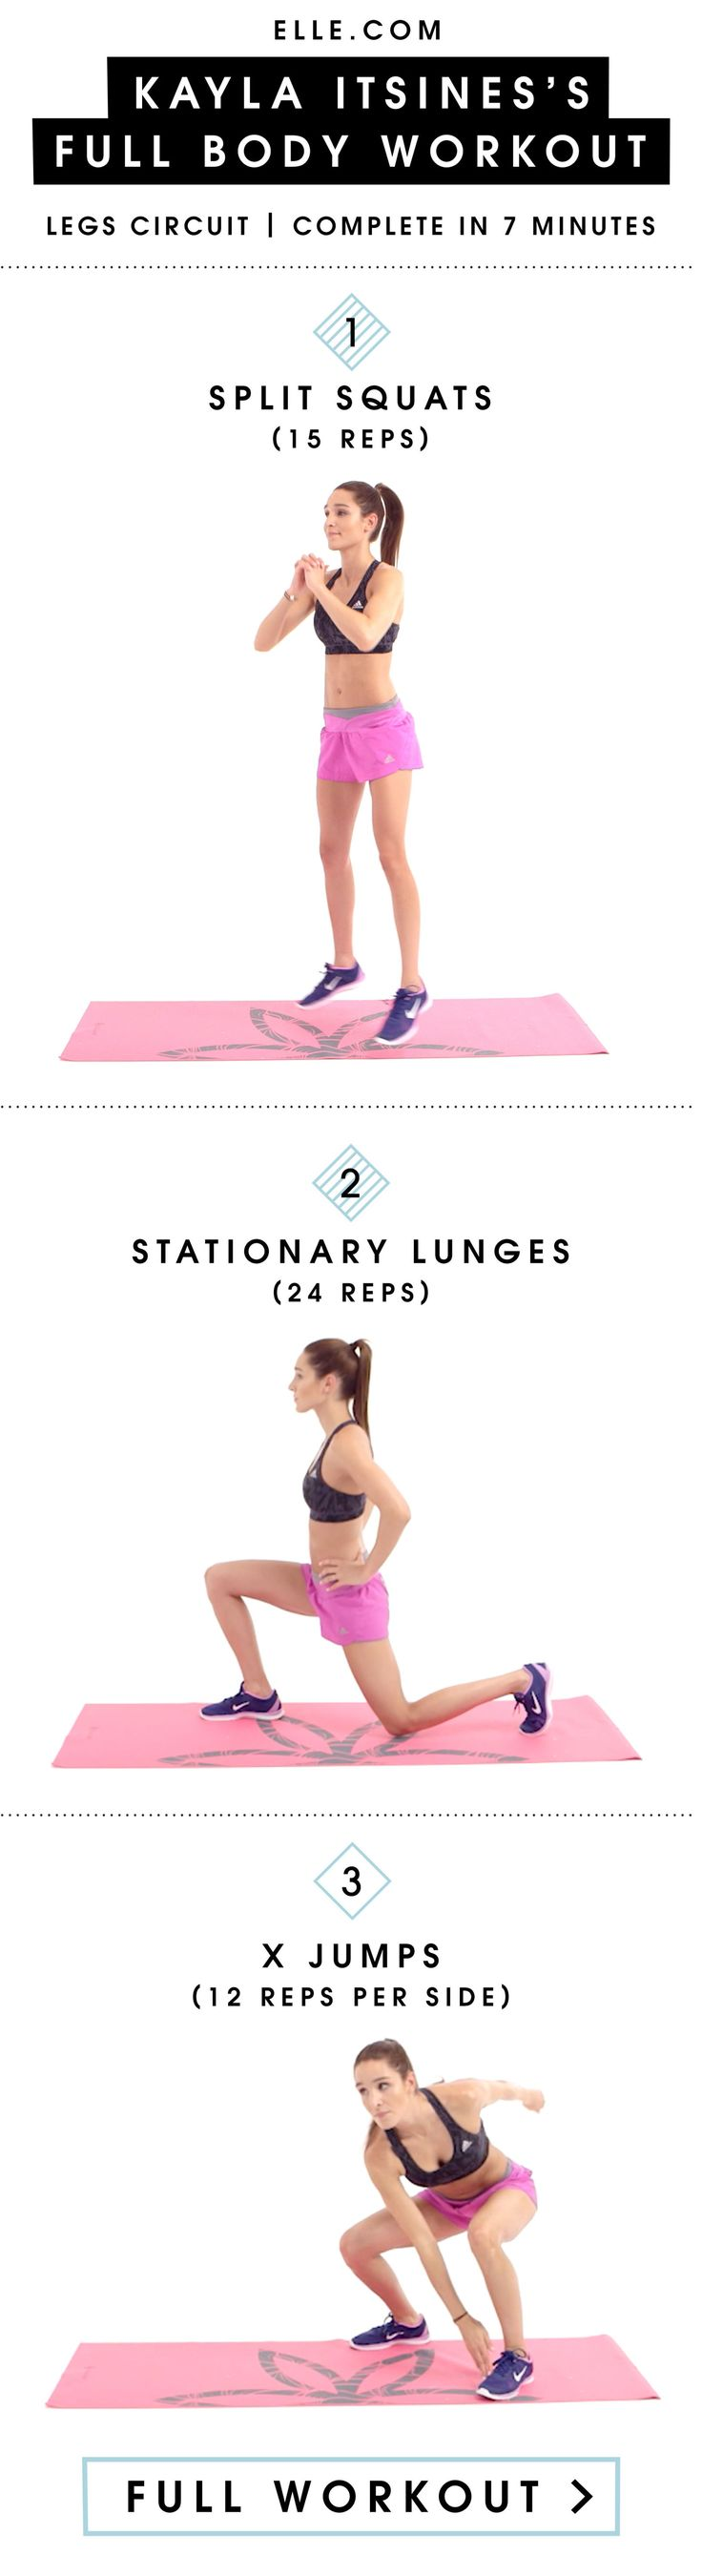 Get Toned Legs In 3 Equipment-Free Moves From Kayla Itsines - ELLE.com